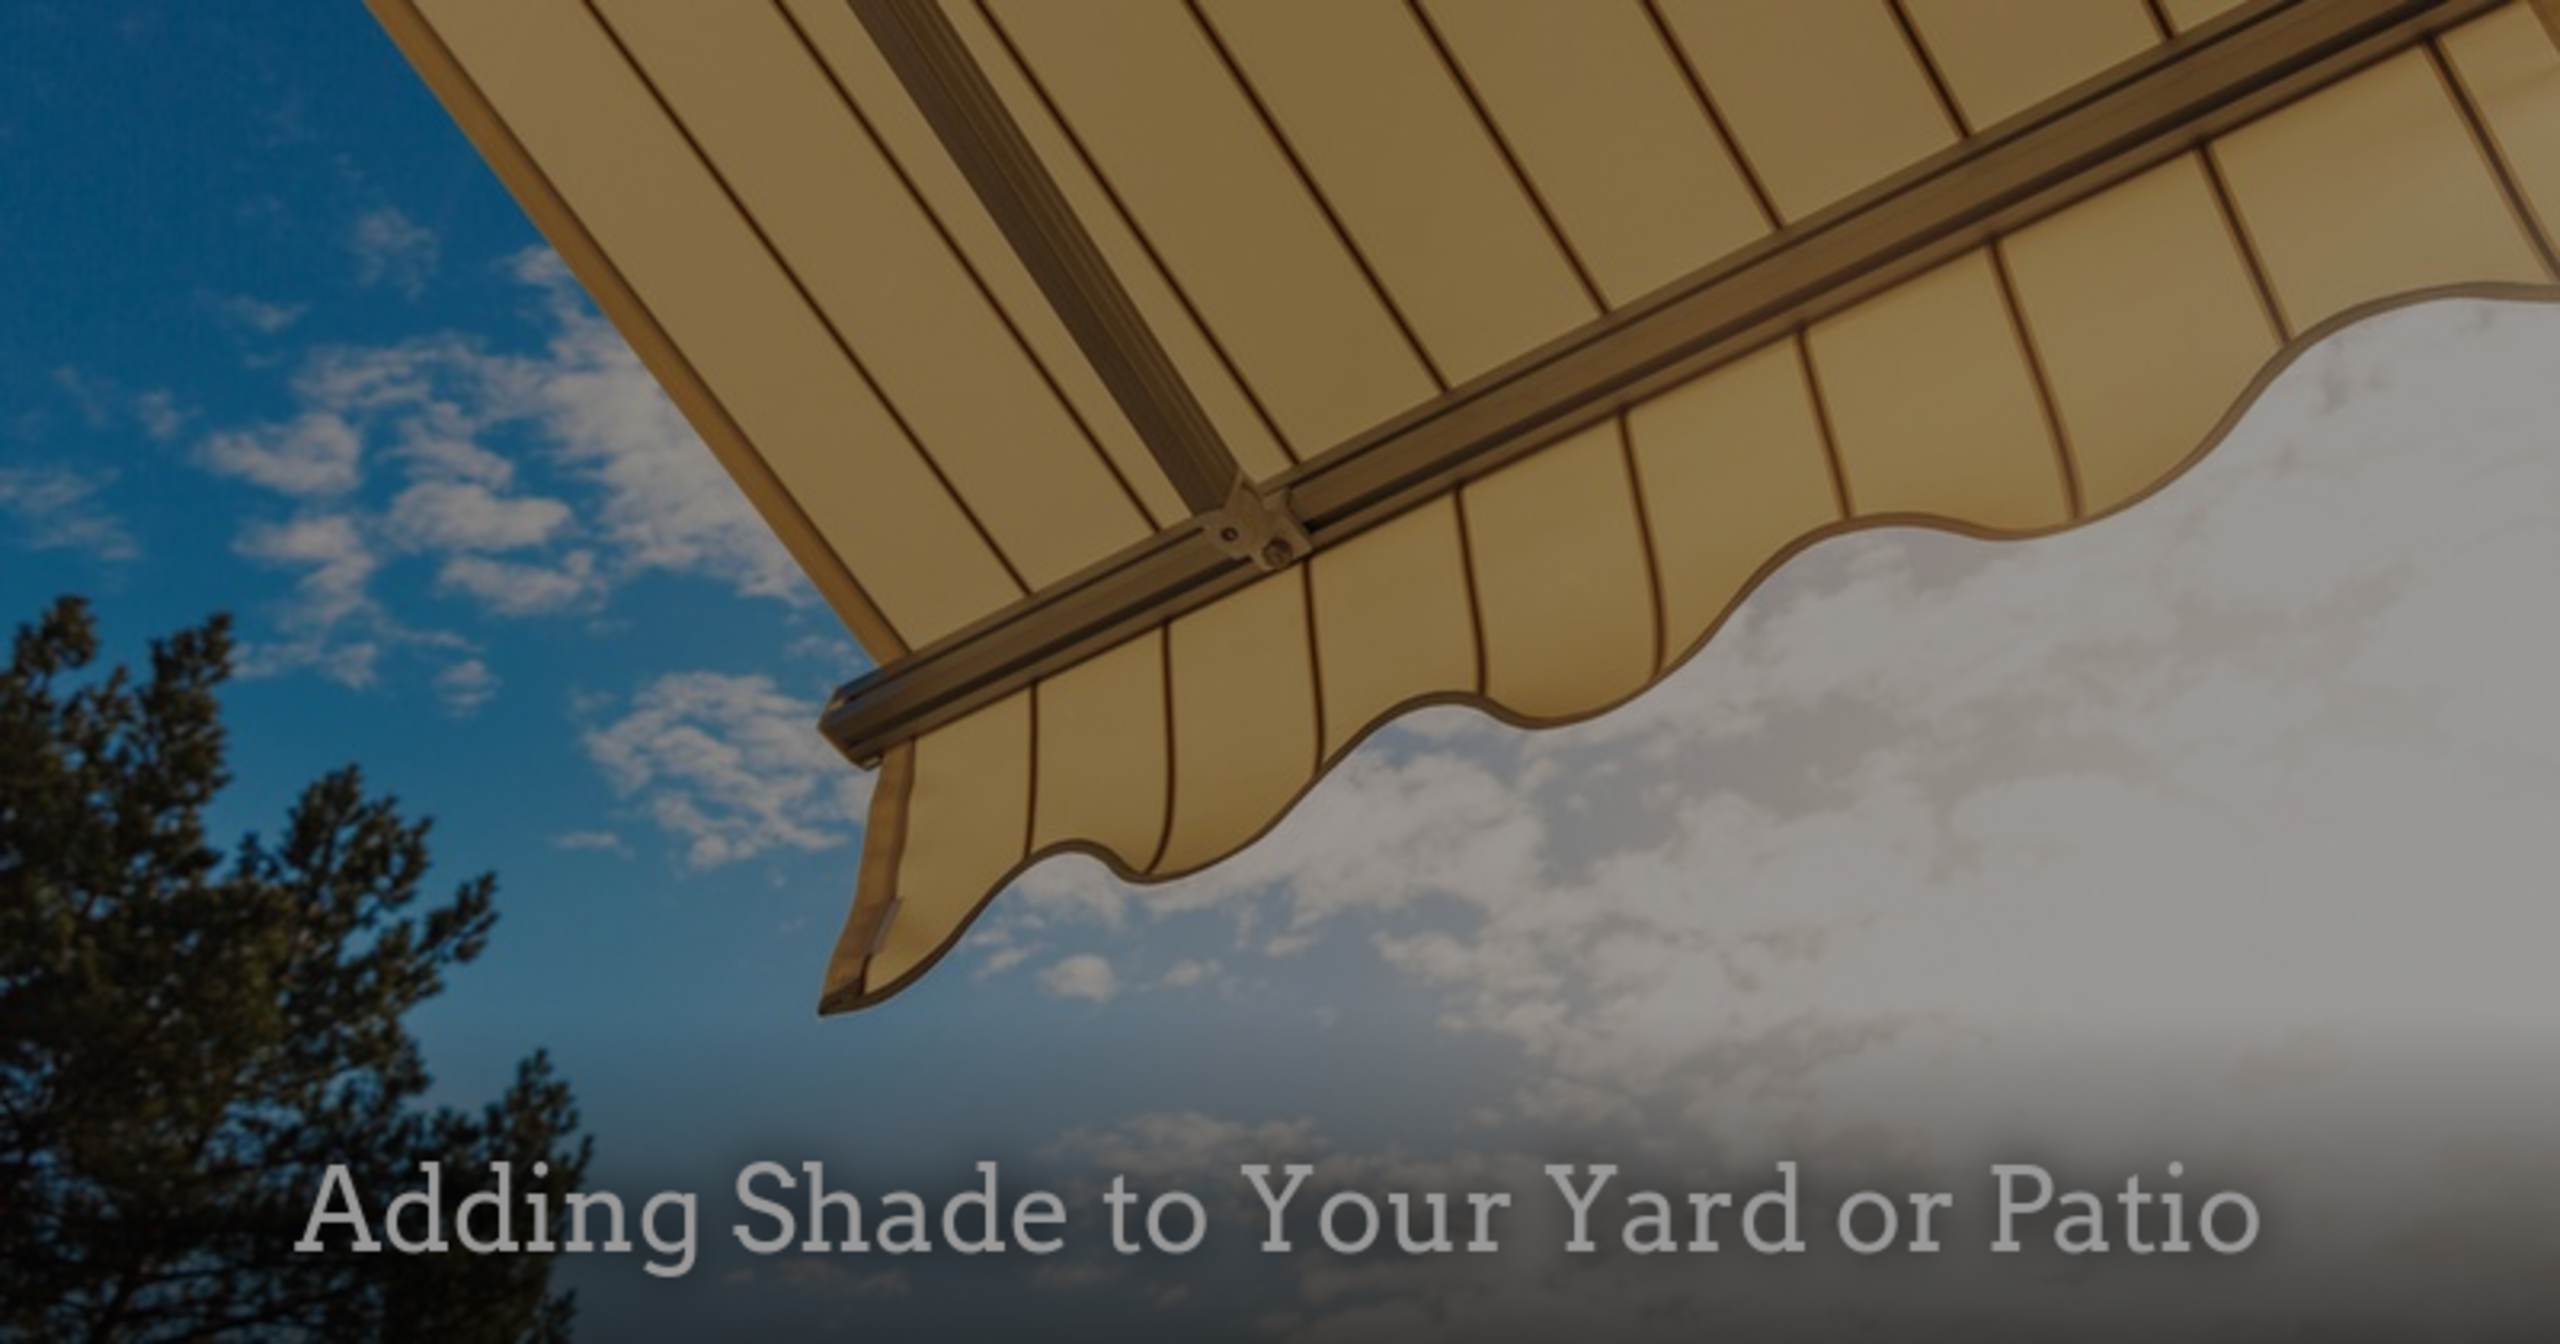 Adding Shade to Your Yard or Patio